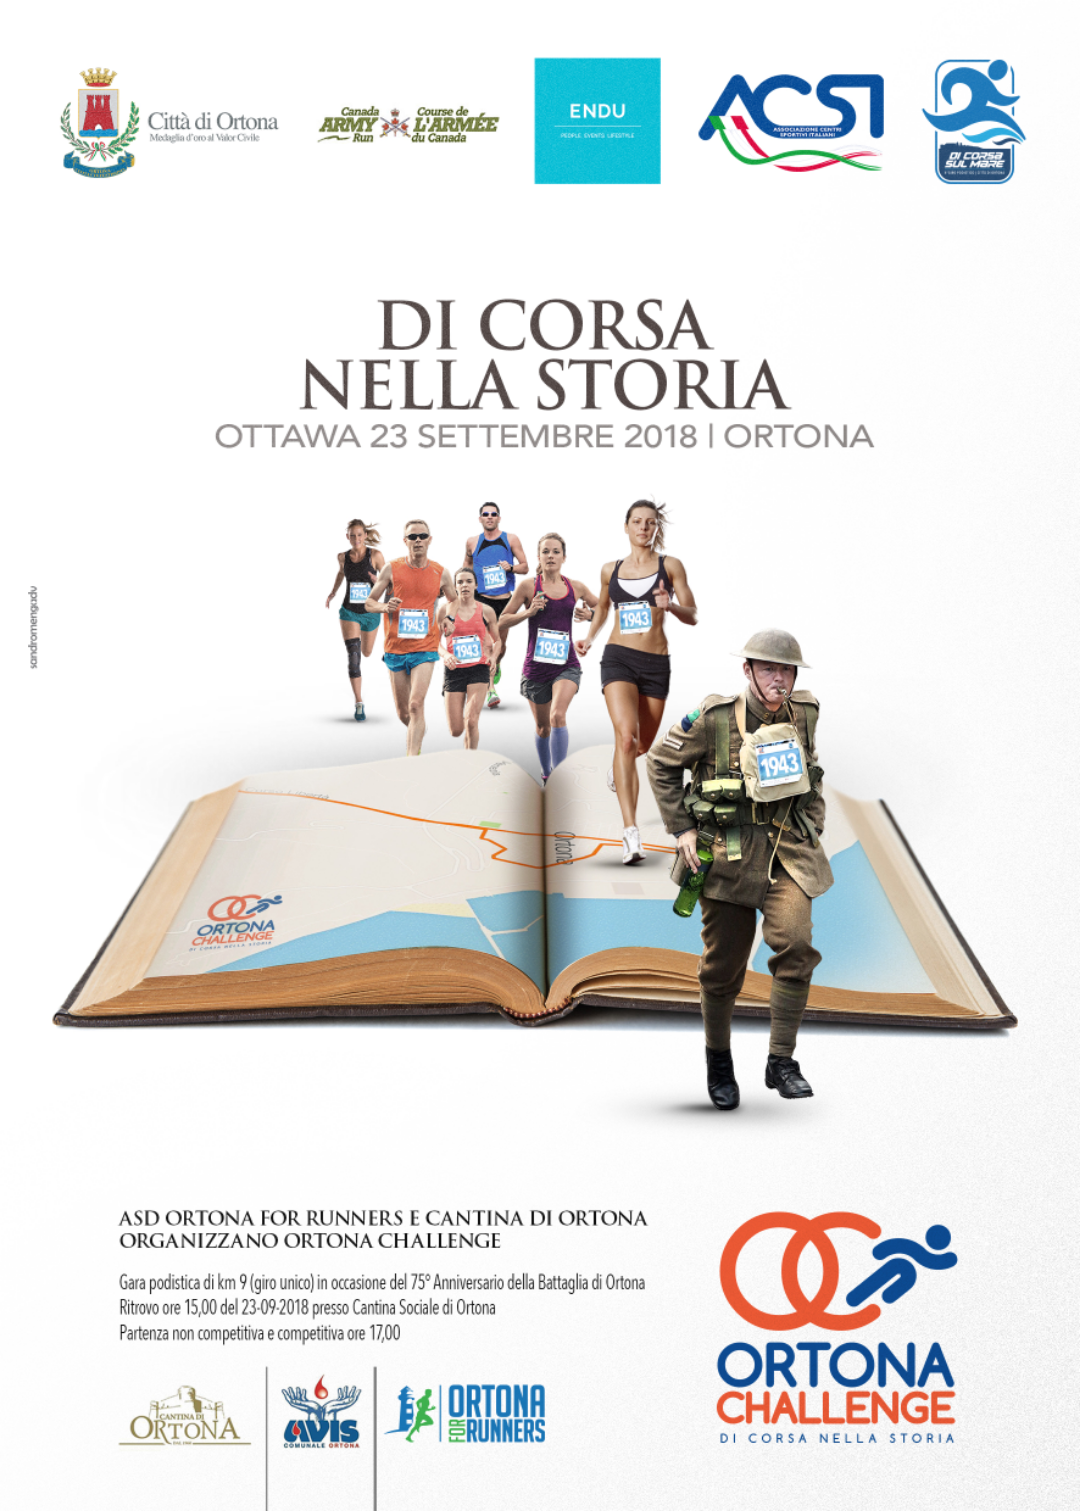 1st edition of the Ortona Challenge race in tandem   with Ottawa, Canada. Join us!